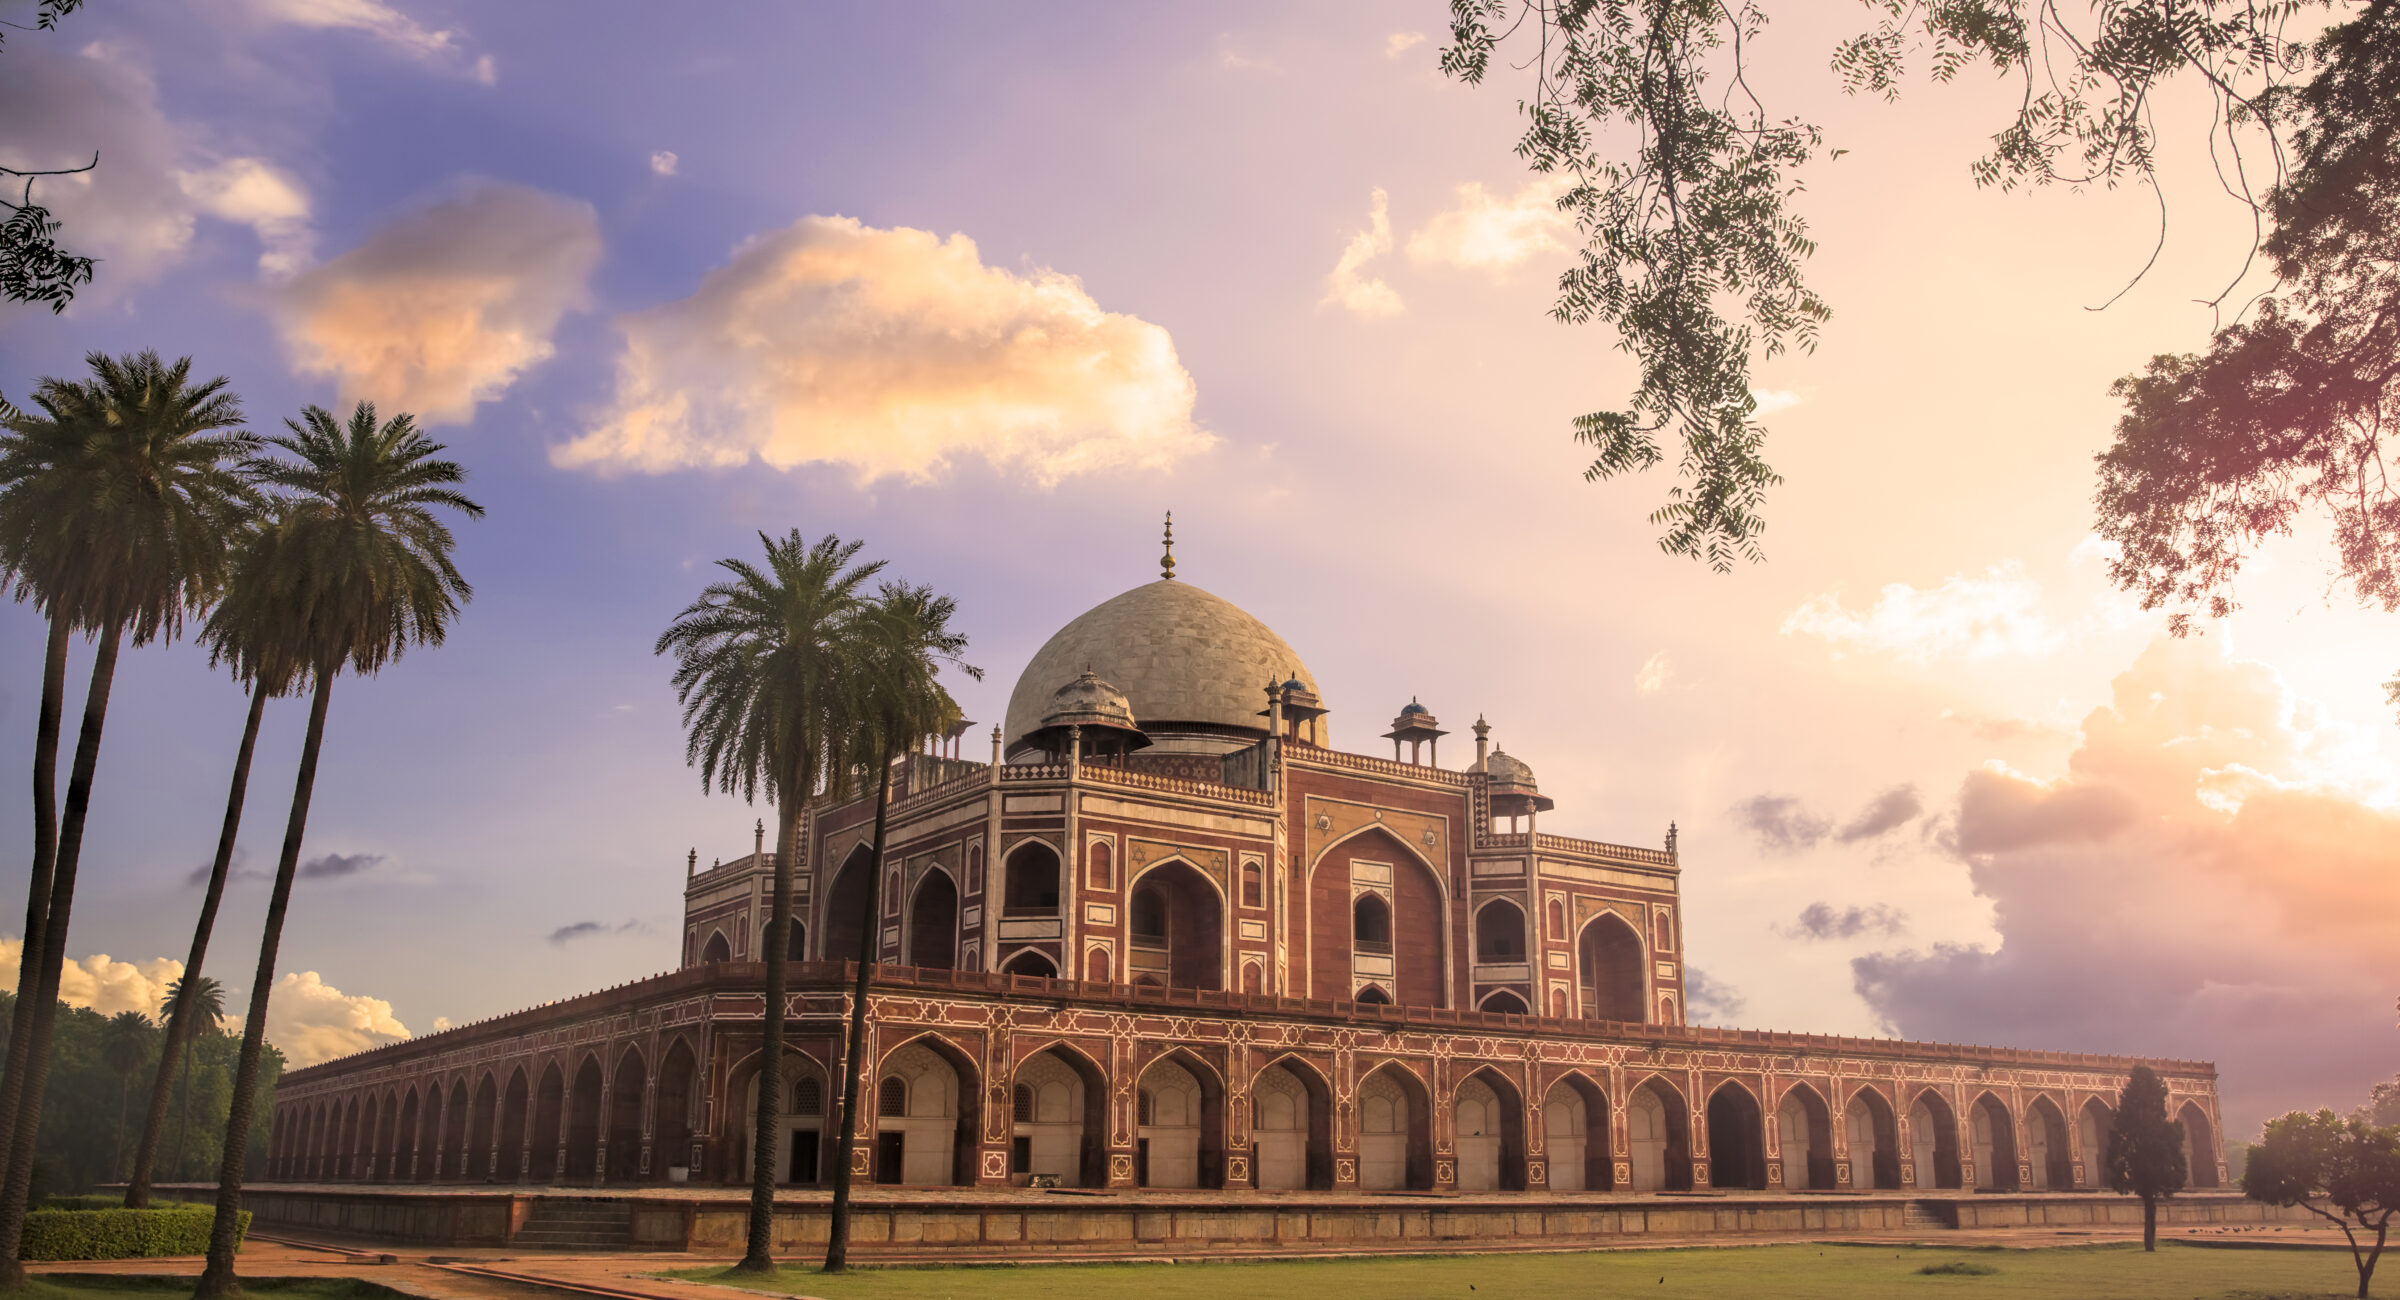 View of Humayun's Tomb at Sunrise. Humayun's Tomb is fine example of Great Mughal architecture, UNESCO World Heritage, Delhi, India.